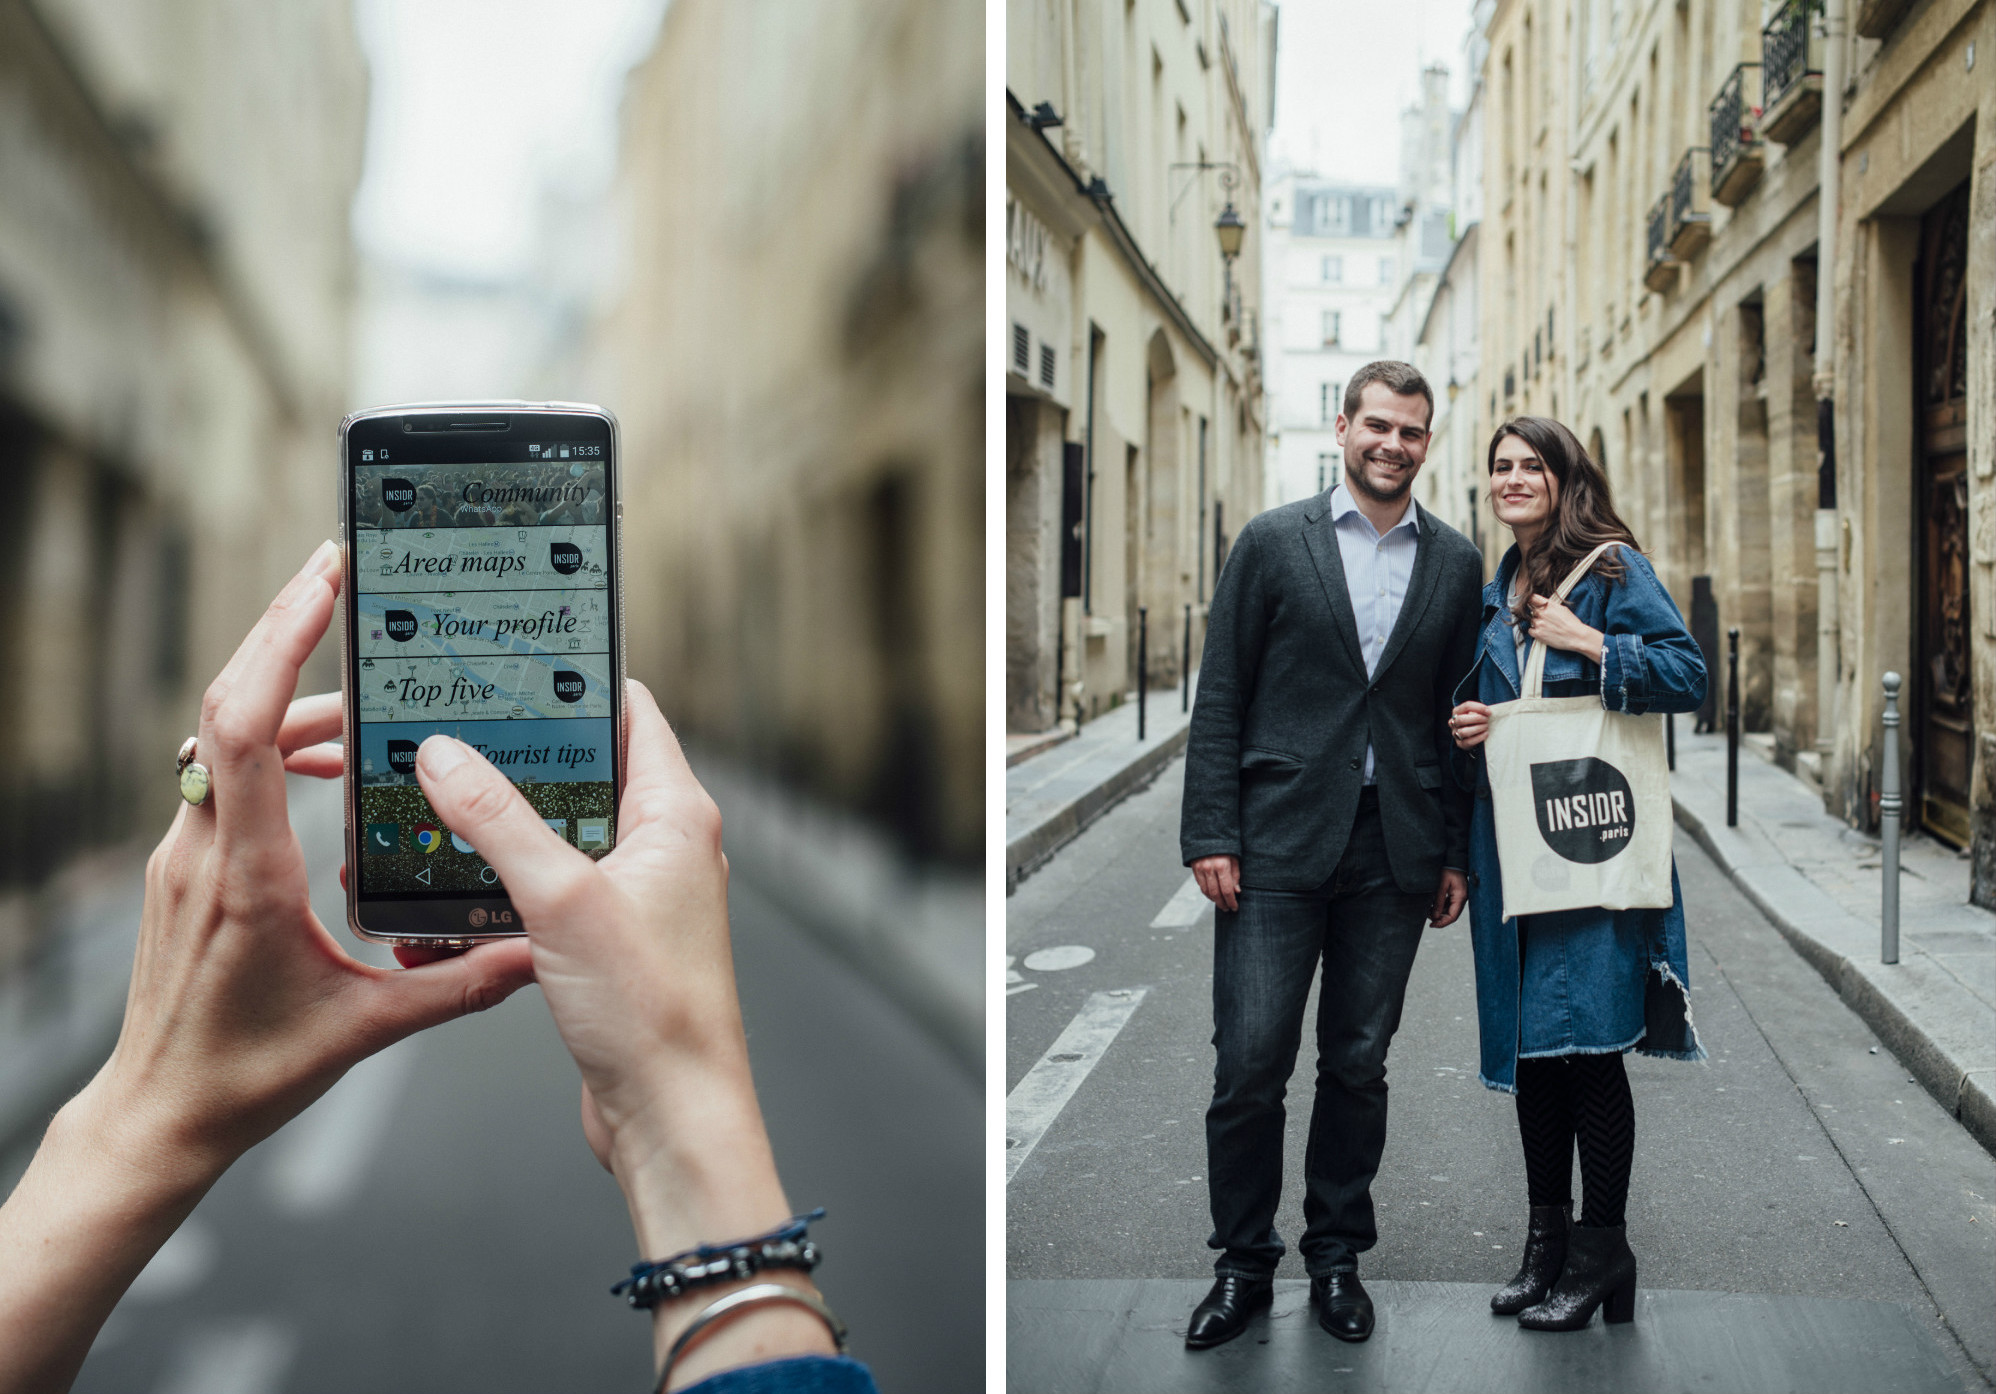 Insidr: The New Digital Guide for Travelers in Paris